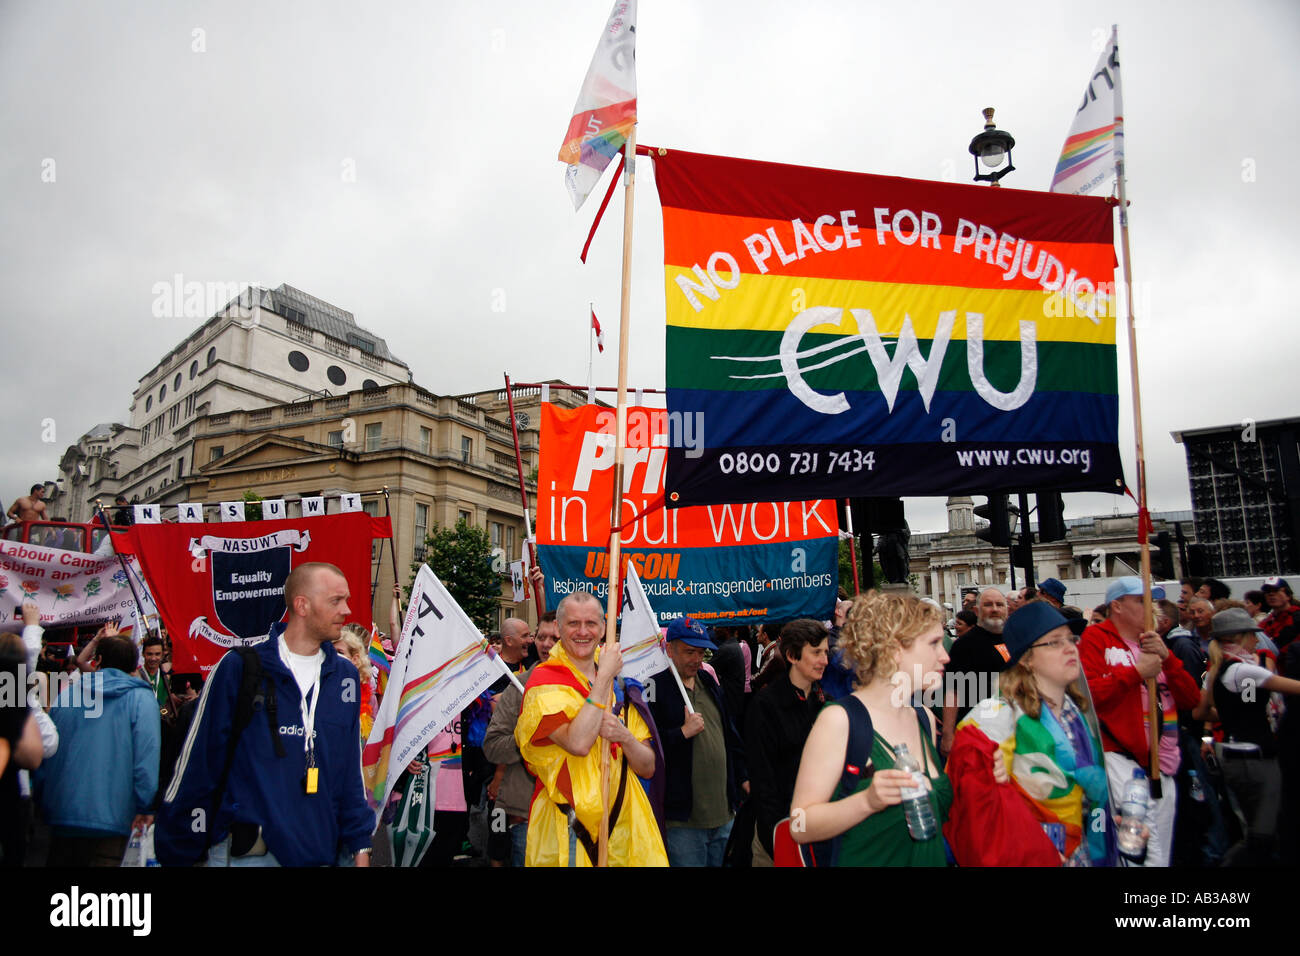 CWU marchers at the 2007 London Gay Pride March - Stock Image